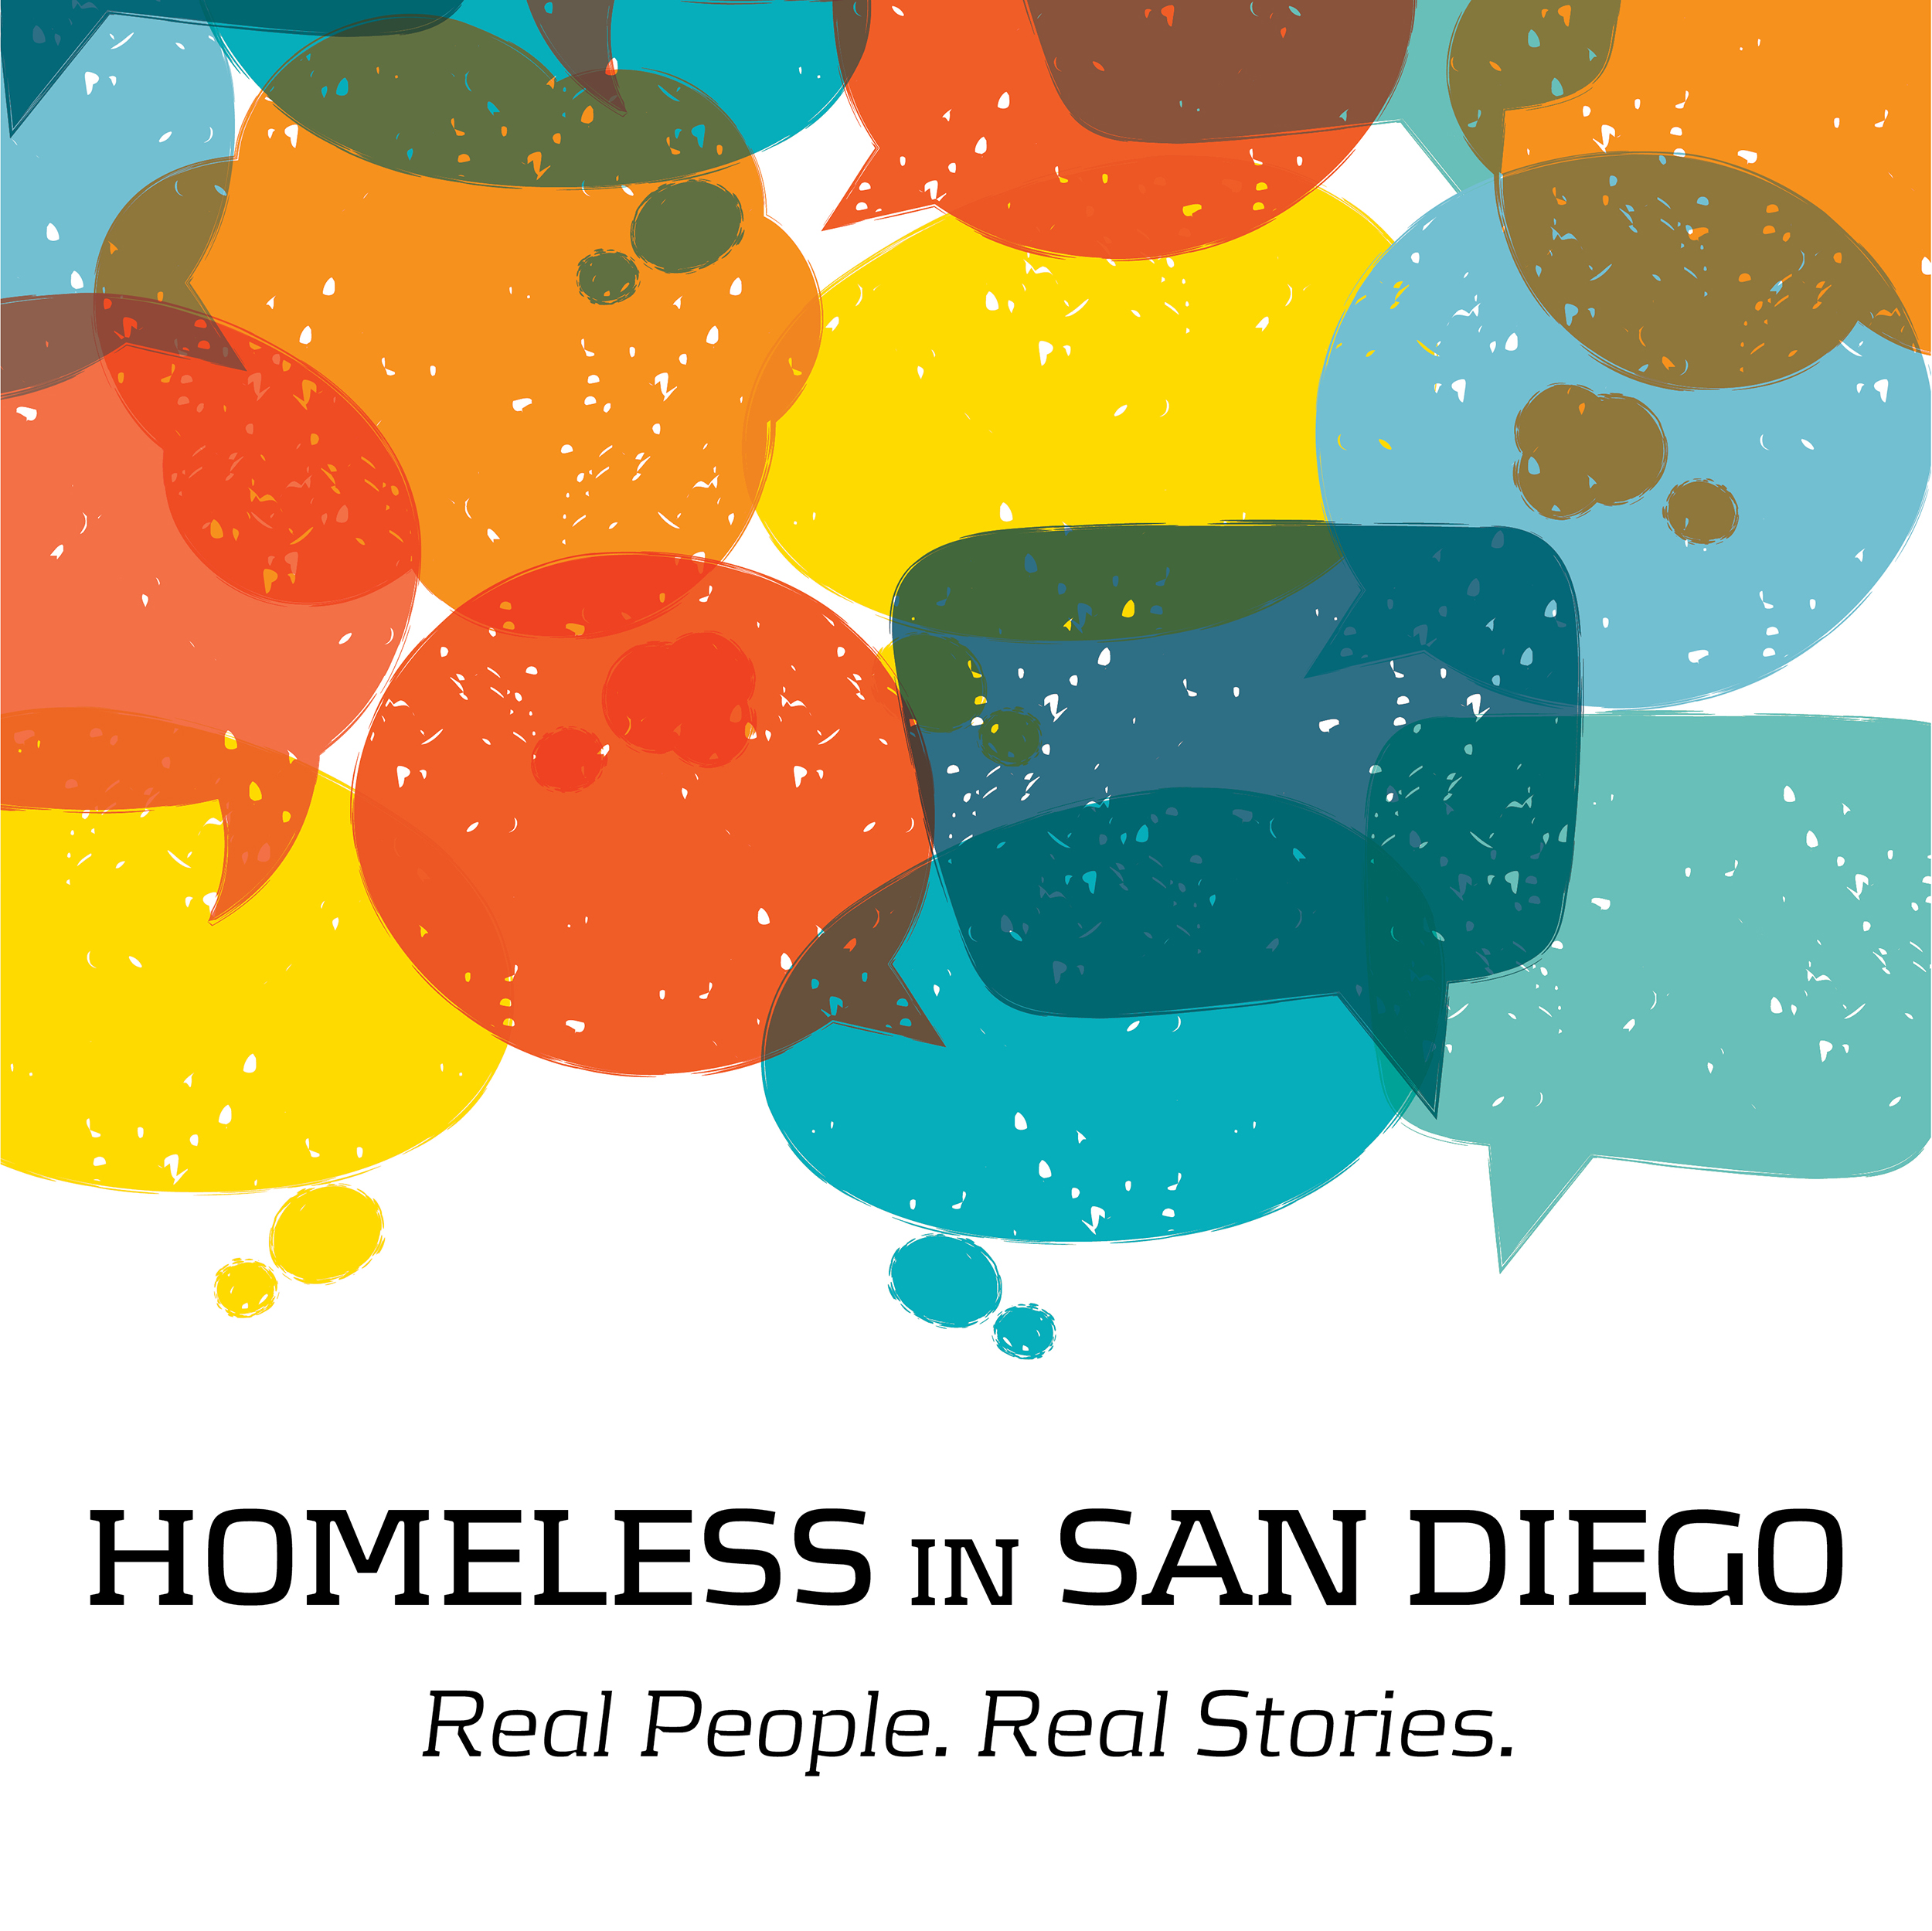 Homeless in San Diego real people real stories logo